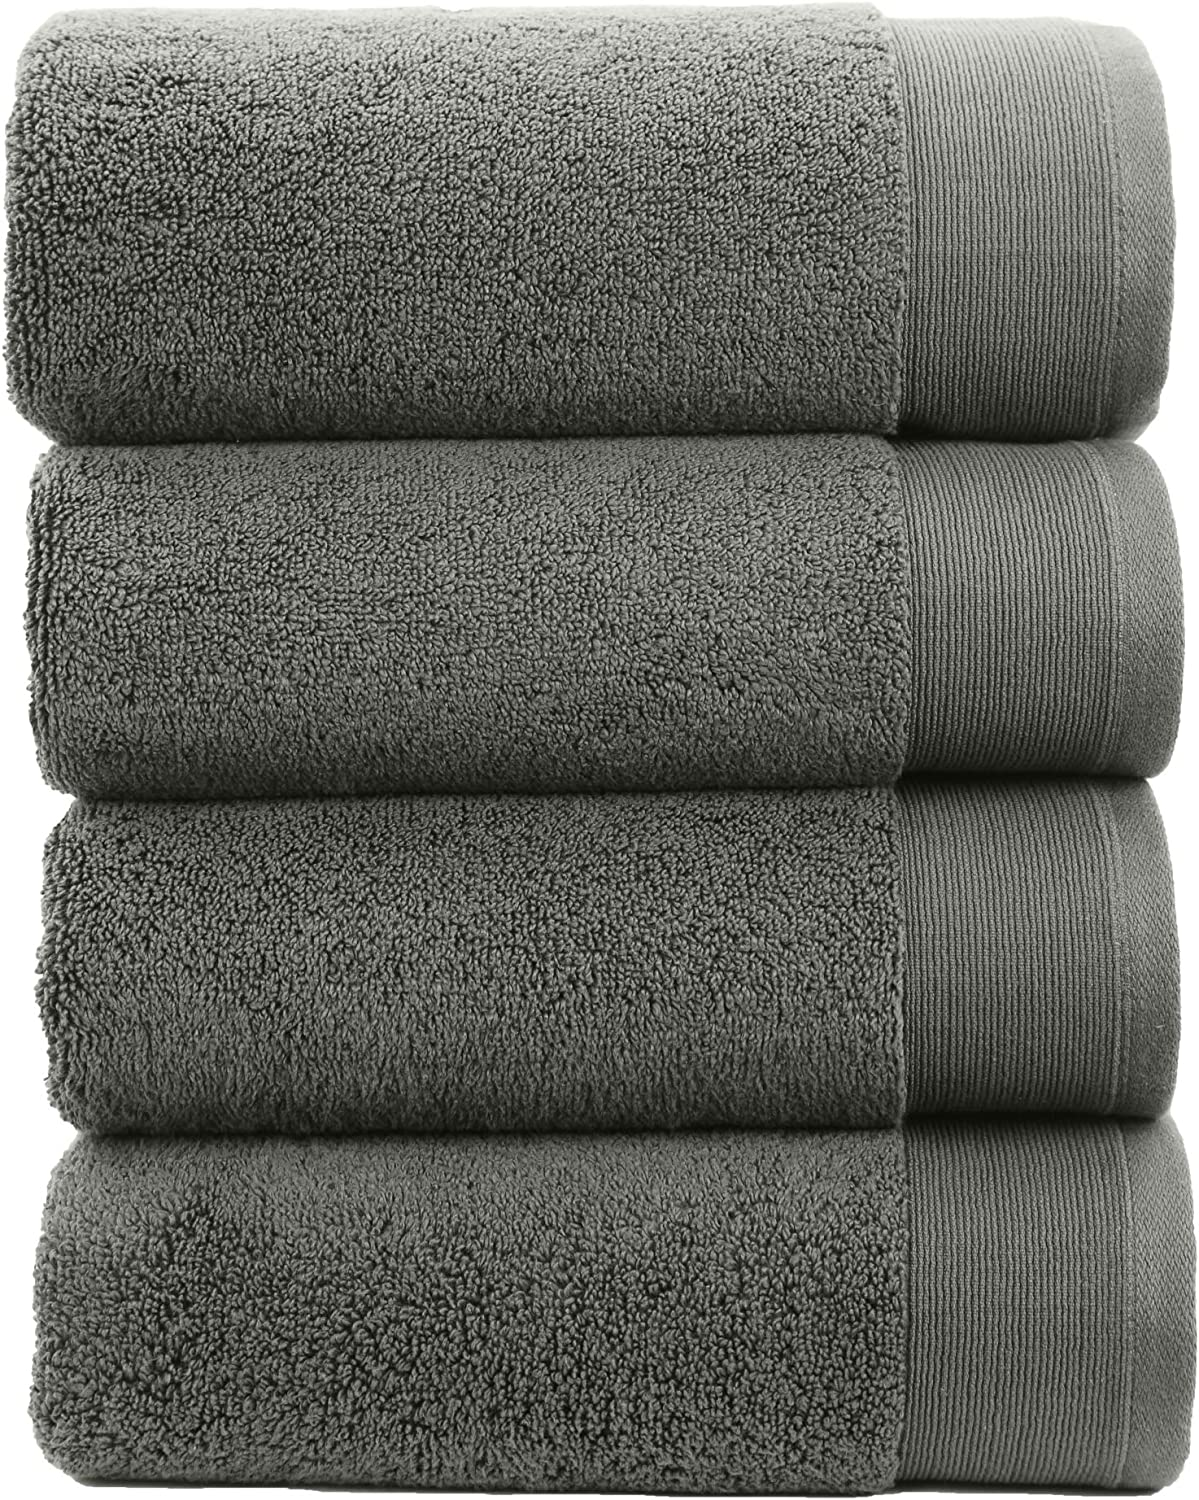 Shower Towel Set for Hair /& Body Ivory -69 x 138 cm Extra Soft /& Fluffy Quick Dry /& Highly Absorbent Pack of 4 Hotel Quality 100/% Cotton Luxury Bath Towels Like a Spa Retreat Everyday No Lint